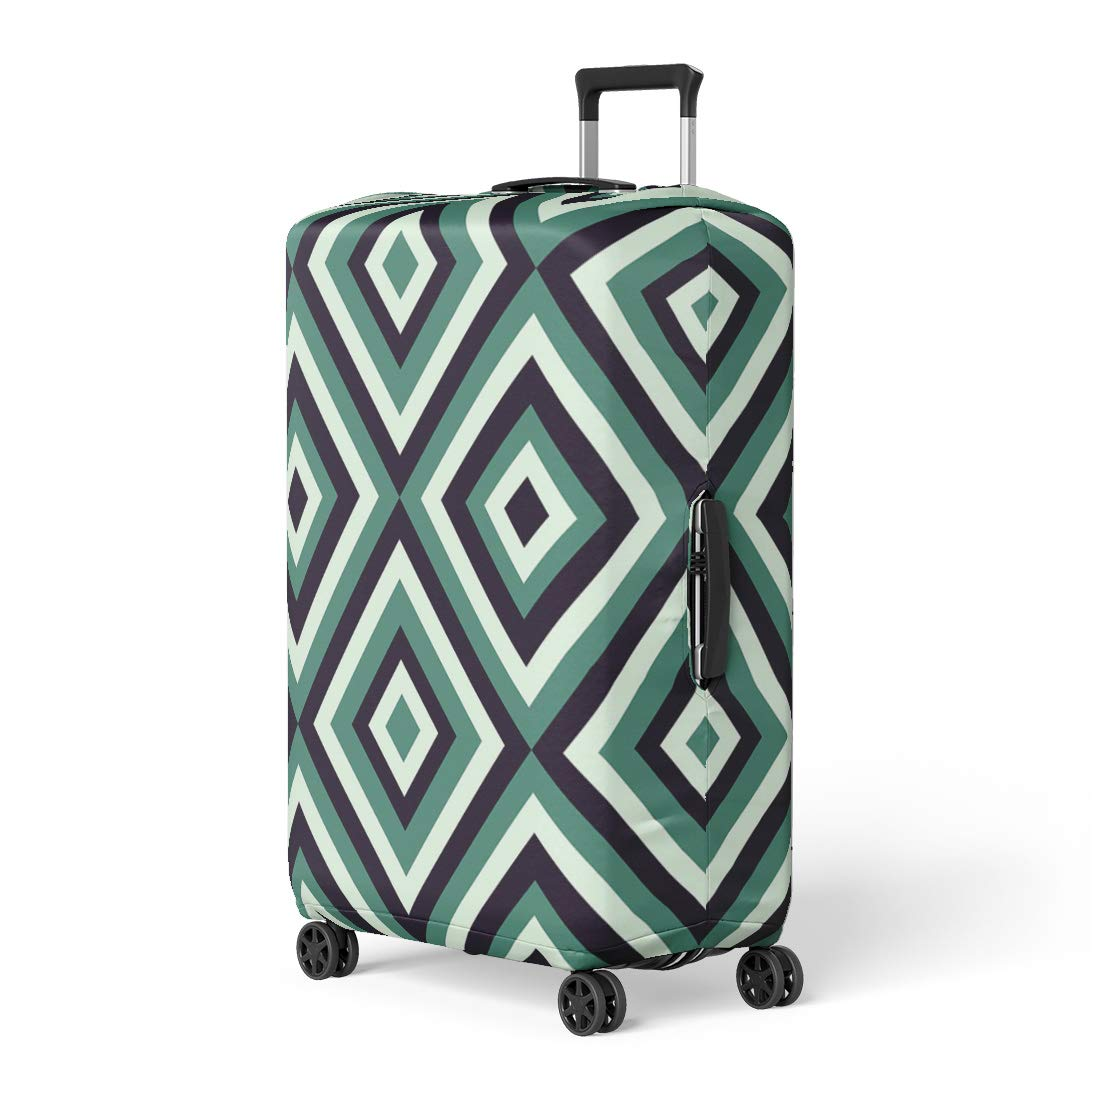 Pinbeam Luggage Cover Green Geometrical Pattern in Retro Colors for Colorful Travel Suitcase Cover Protector Baggage Case Fits 26-28 inches